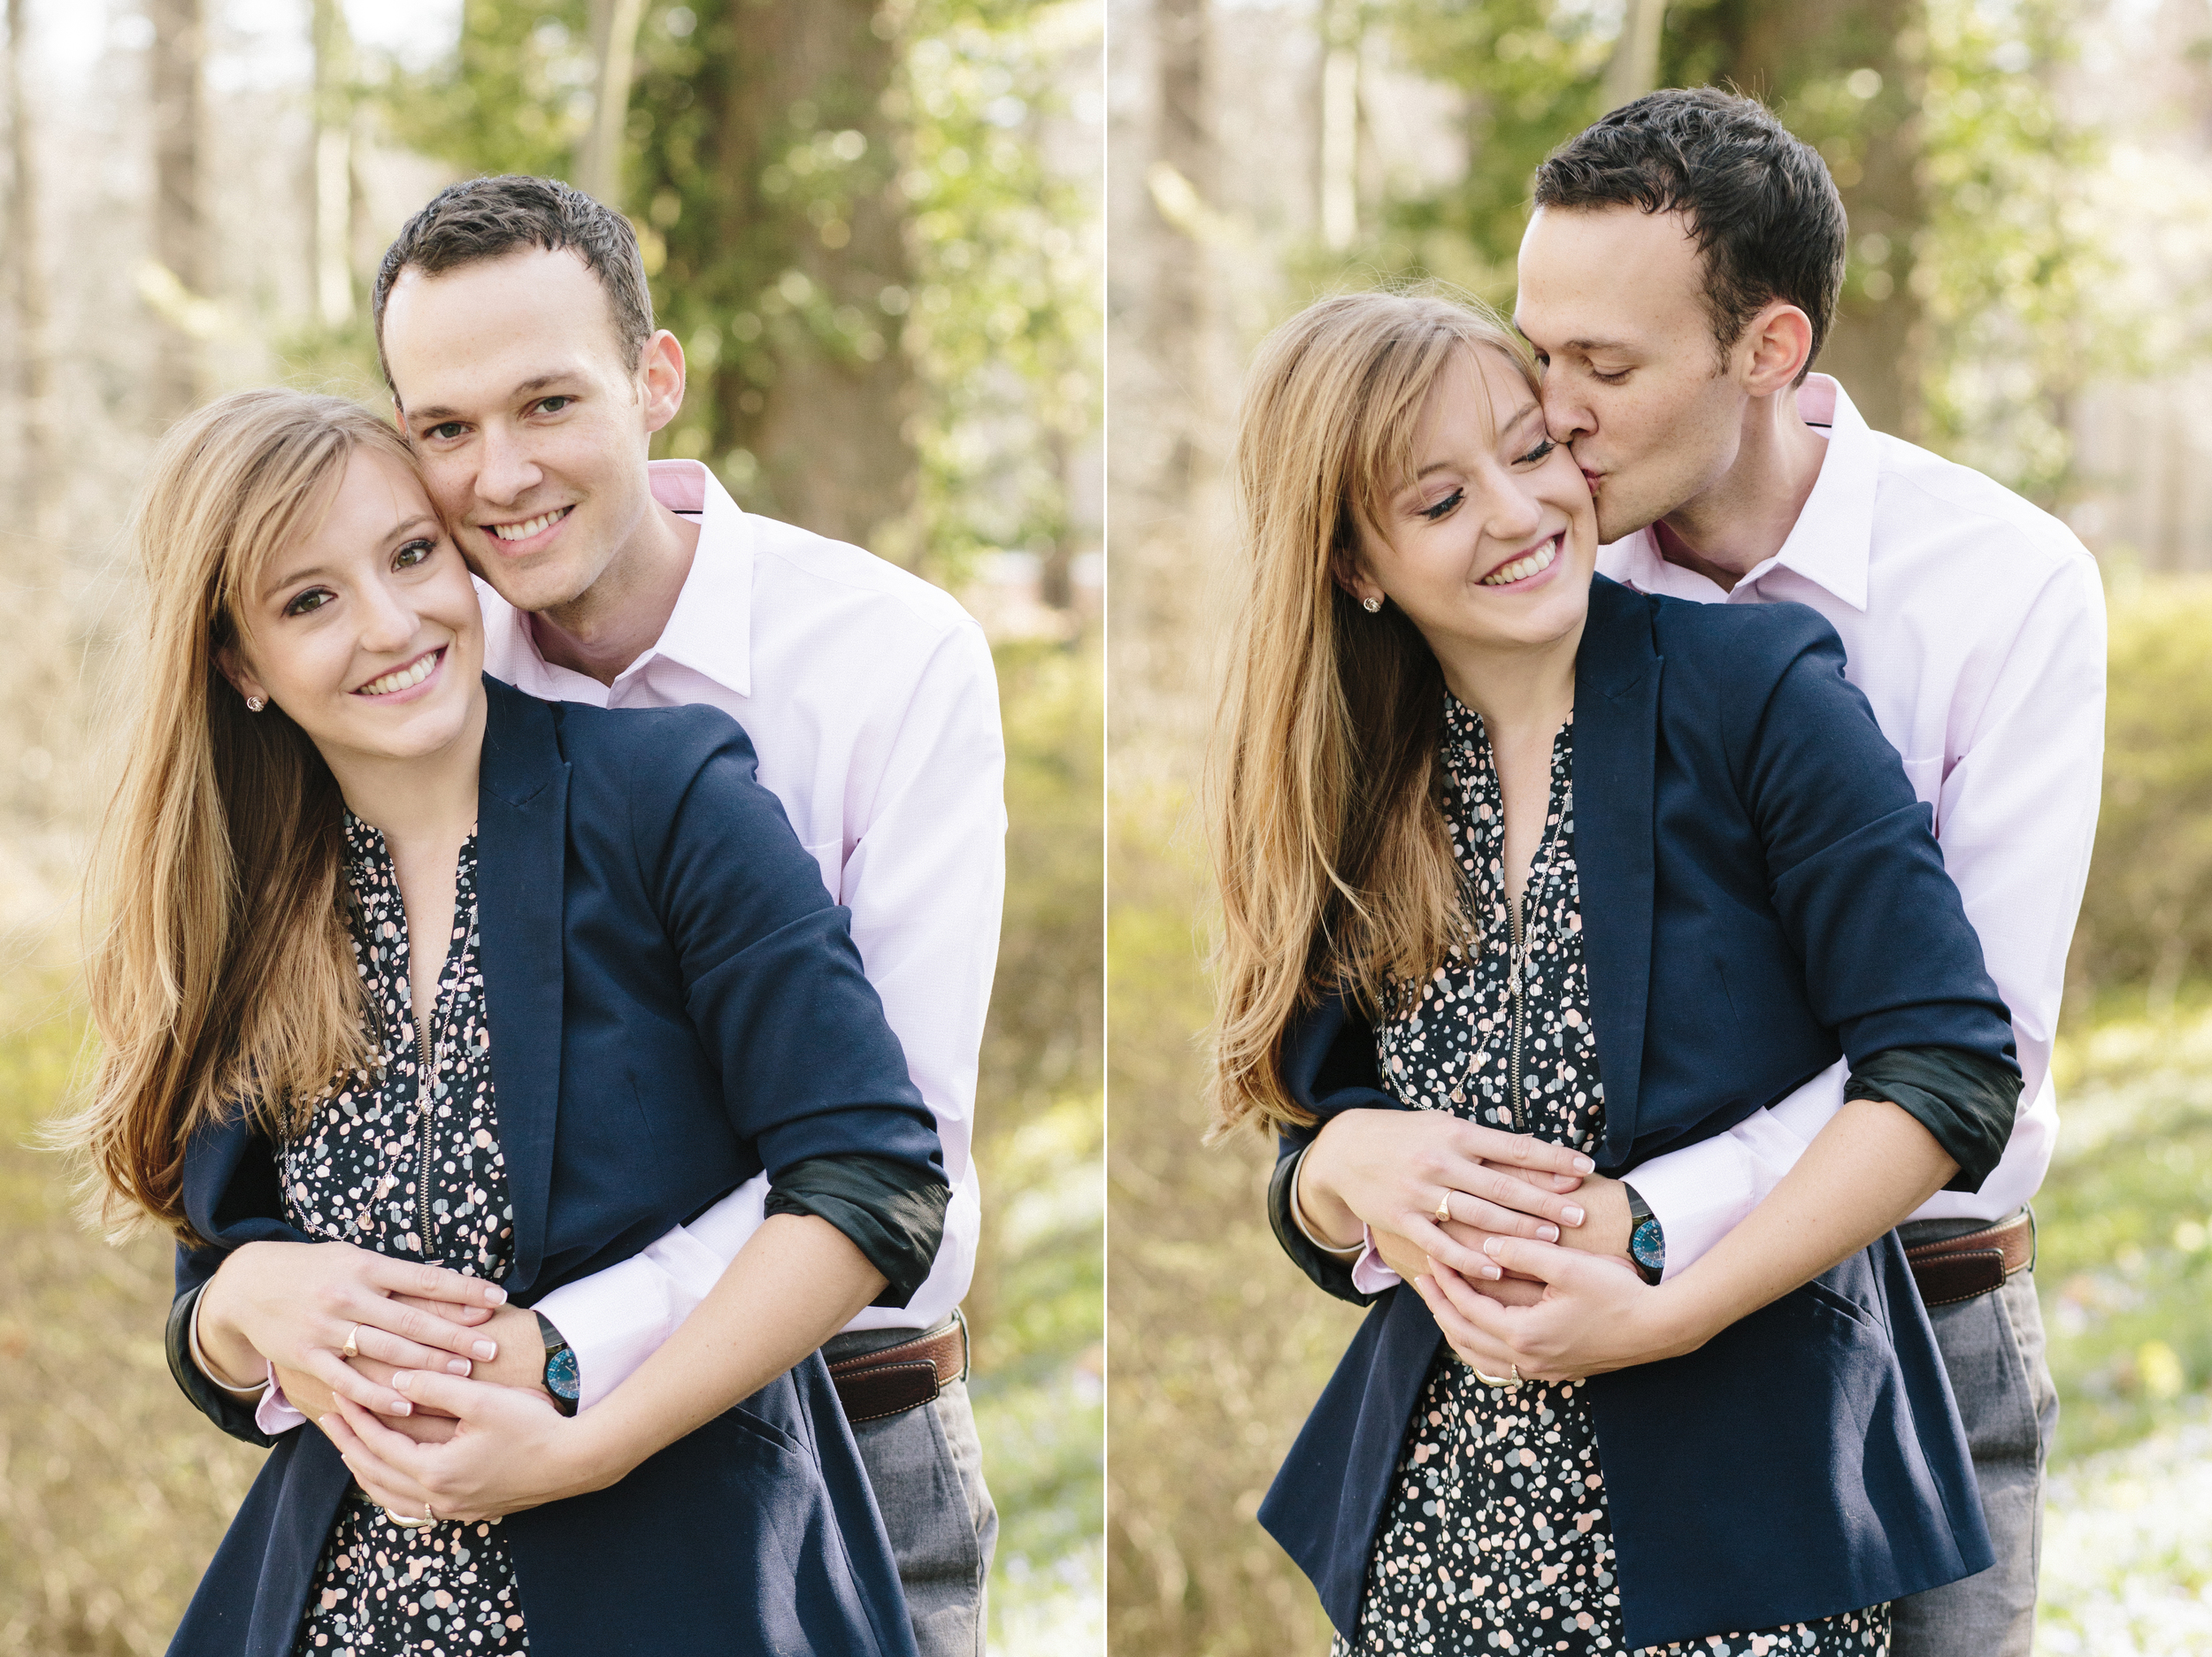 Sarah and Matt's engagement photos were taken at the Greenville, Delaware duPont estate Winterthur by Hudson Nichols photography.